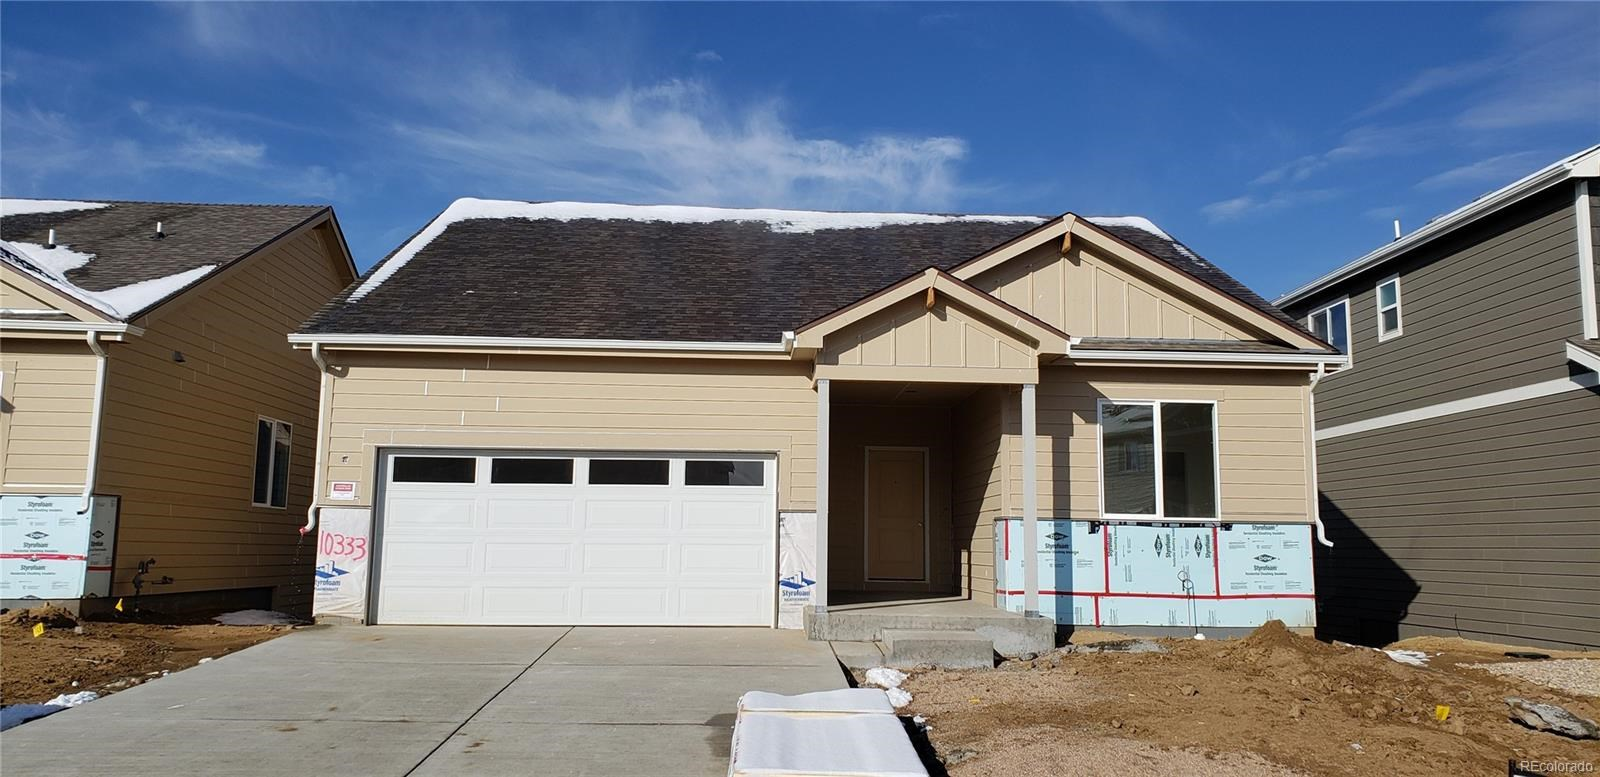 MLS# 5072722 - 1 - 10333 W 11th Street, Greeley, CO 80634